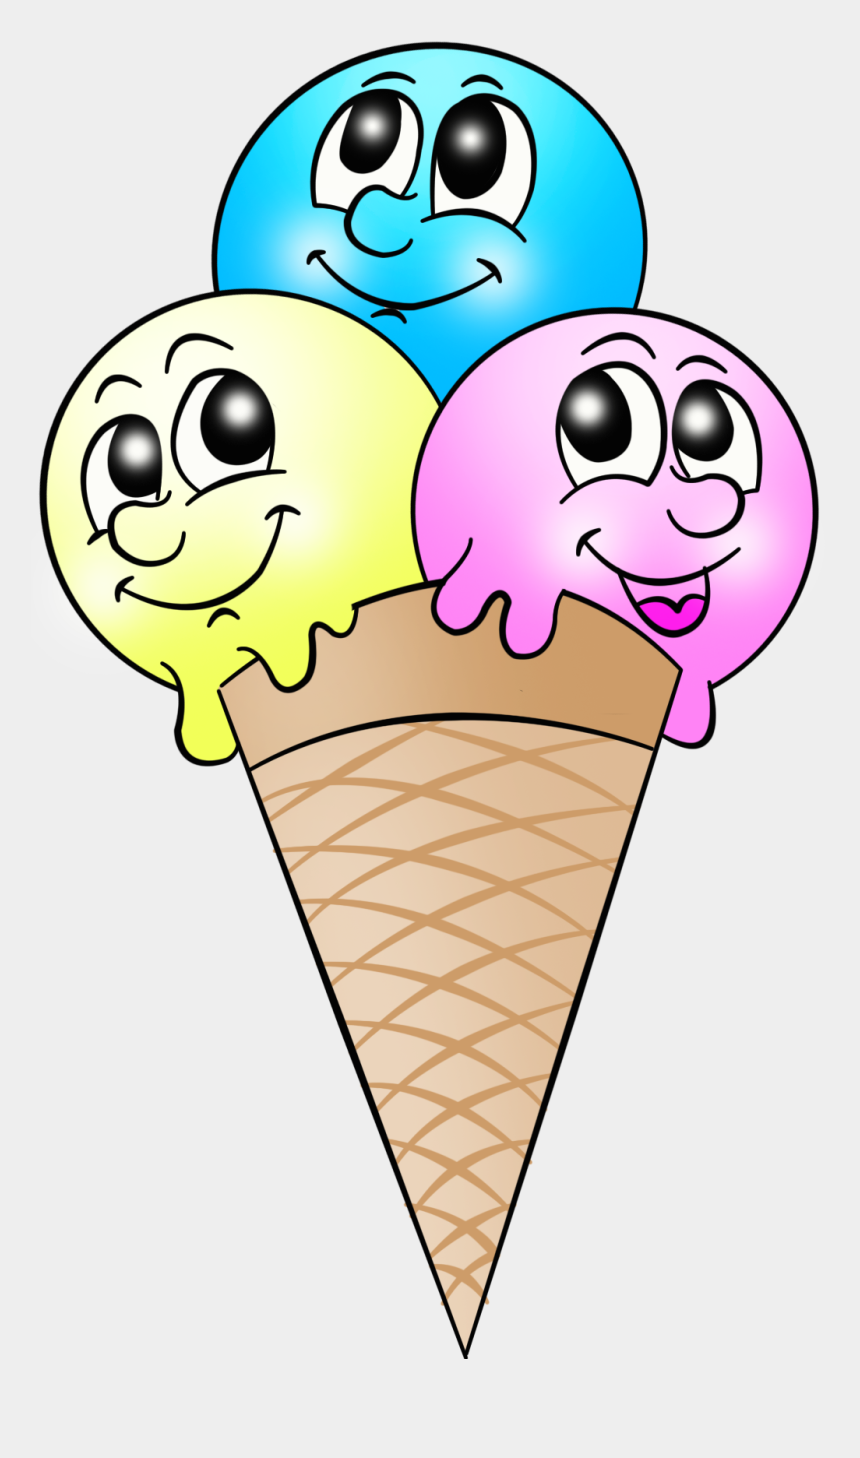 Dessin Cornet De Glaces Cliparts Cartoons Jingfm